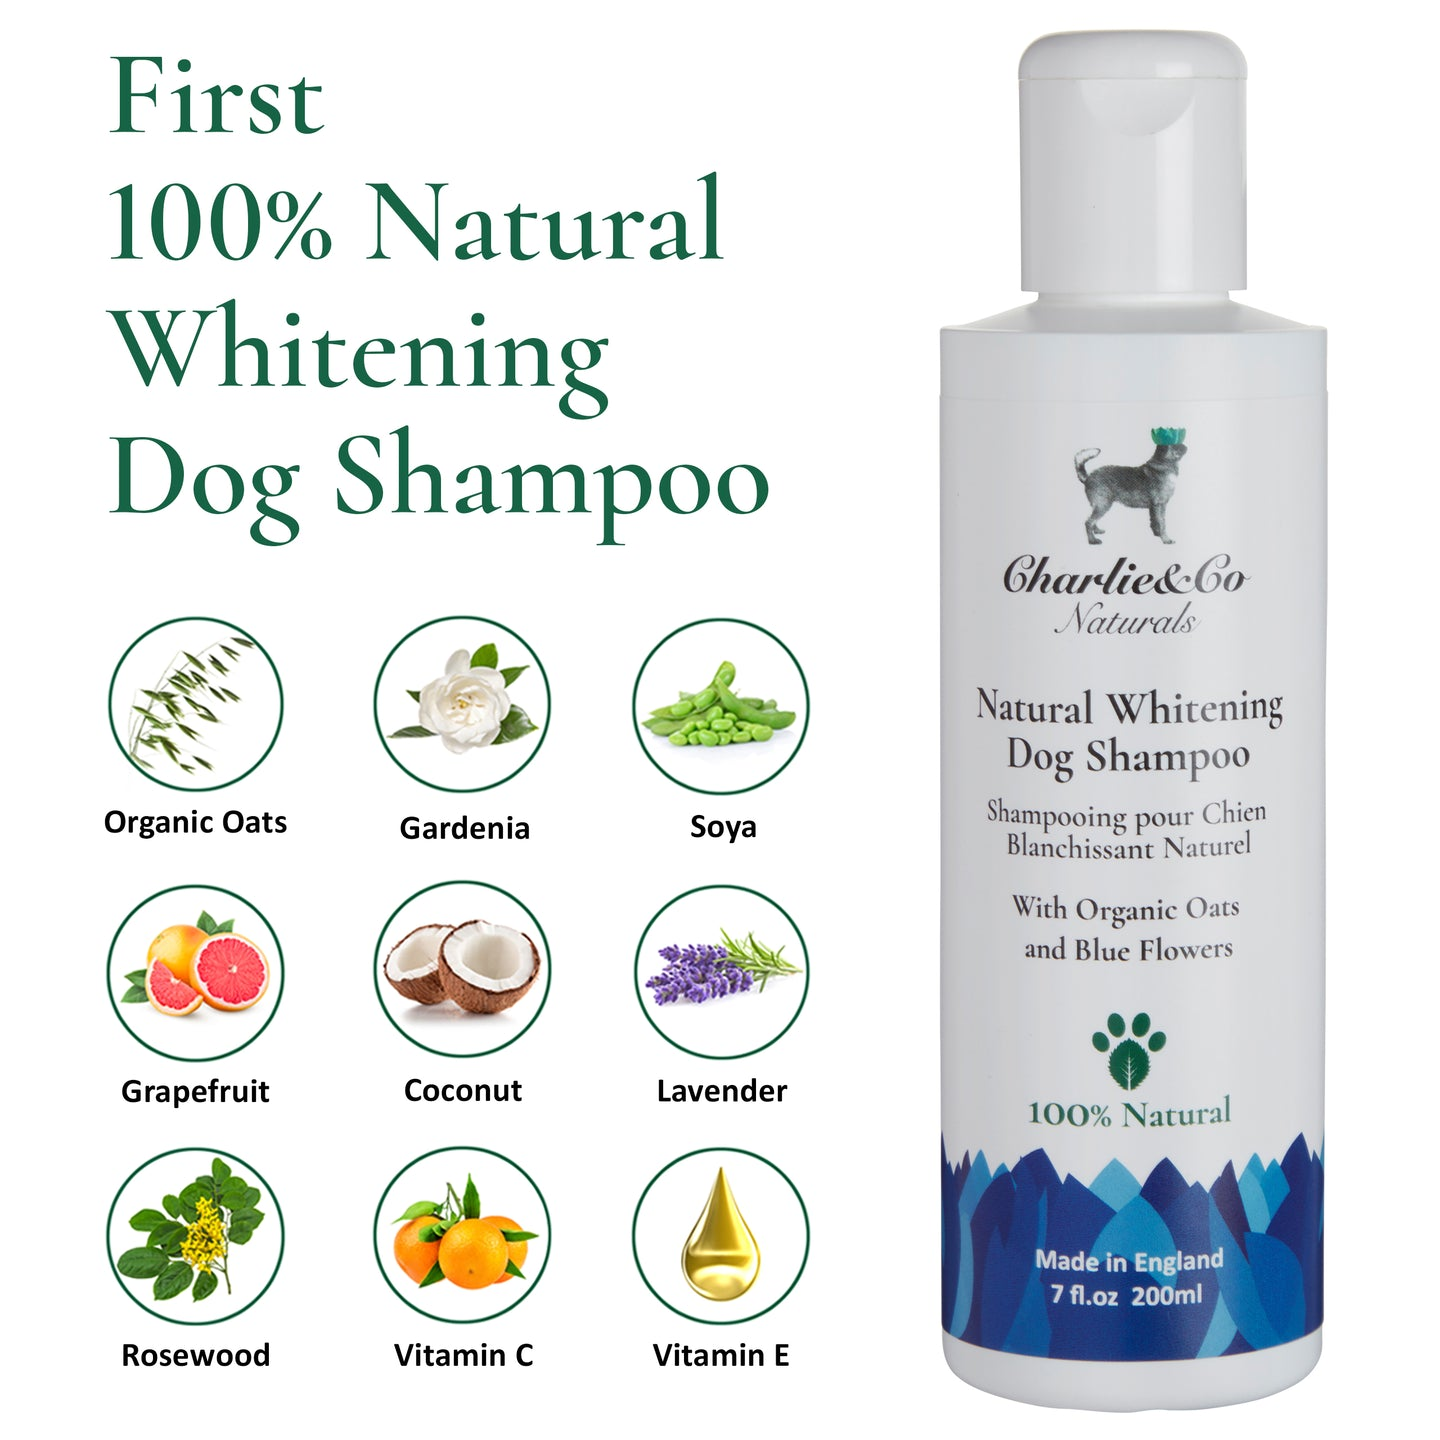 100% Natural Whitening Dog Shampoo